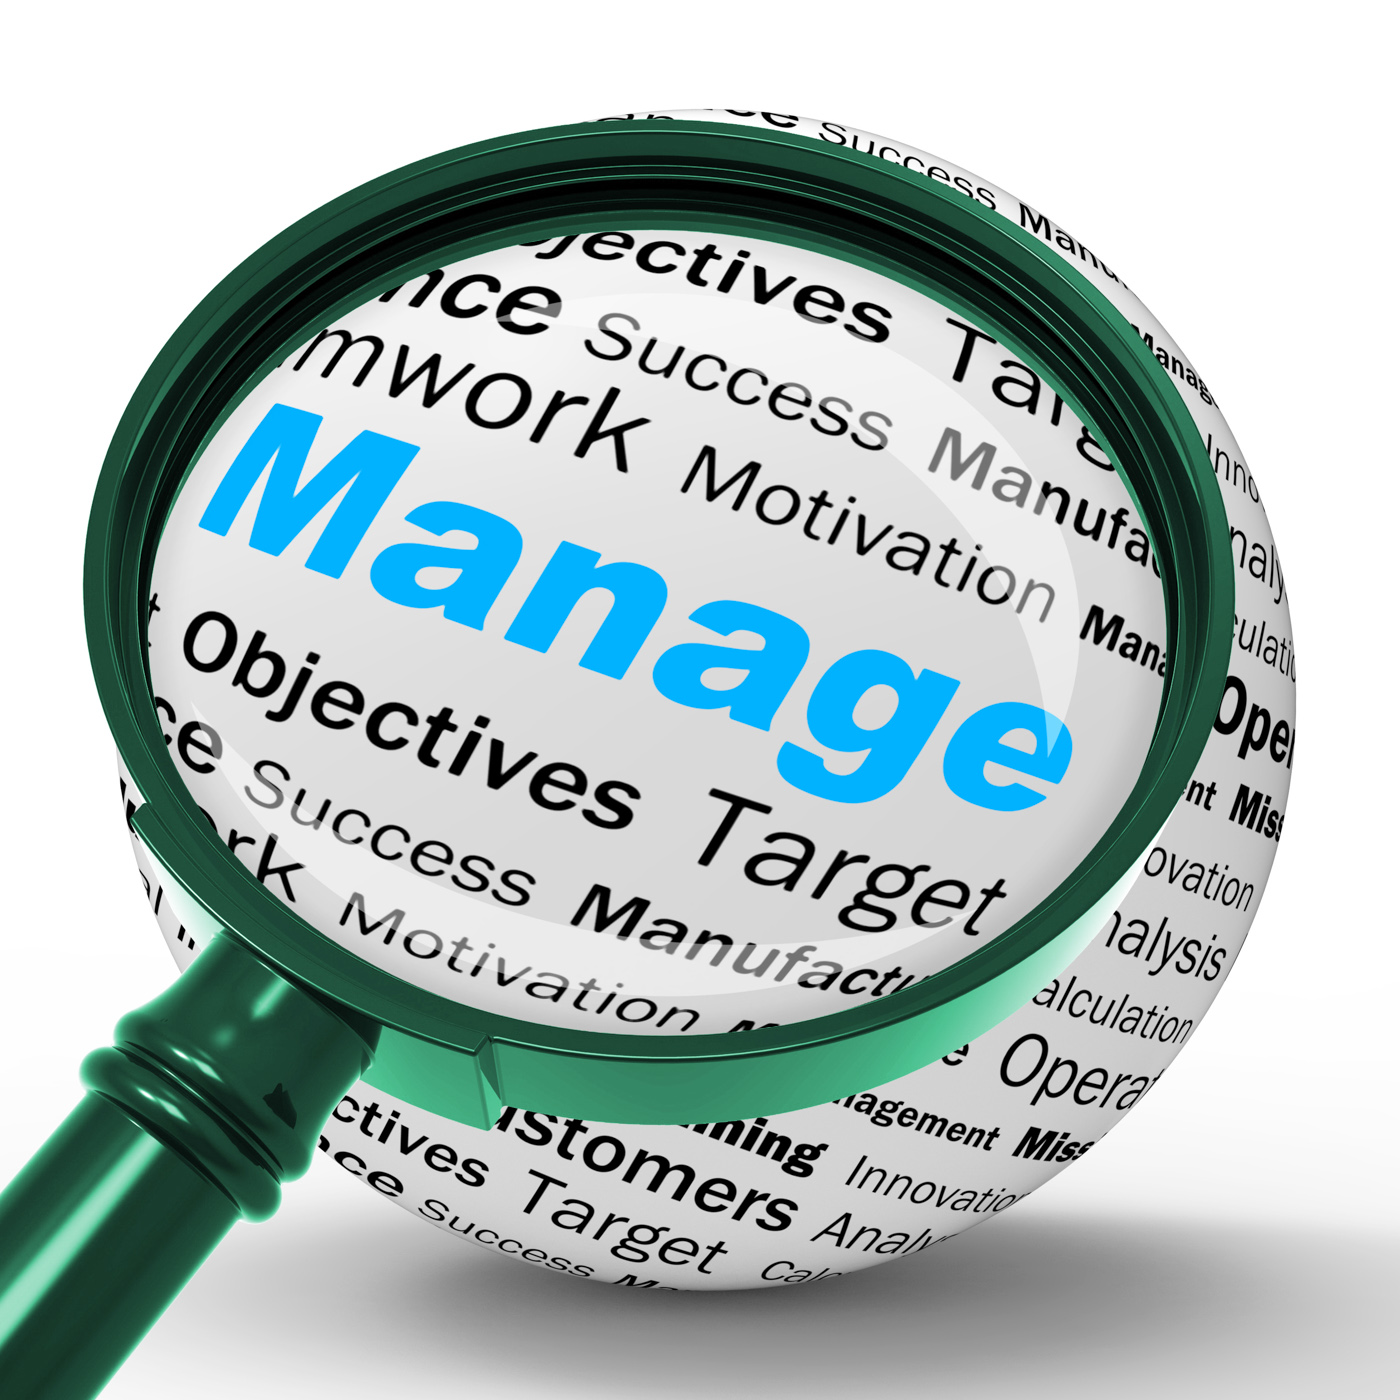 Manage magnifier definition means business administration or developme photo